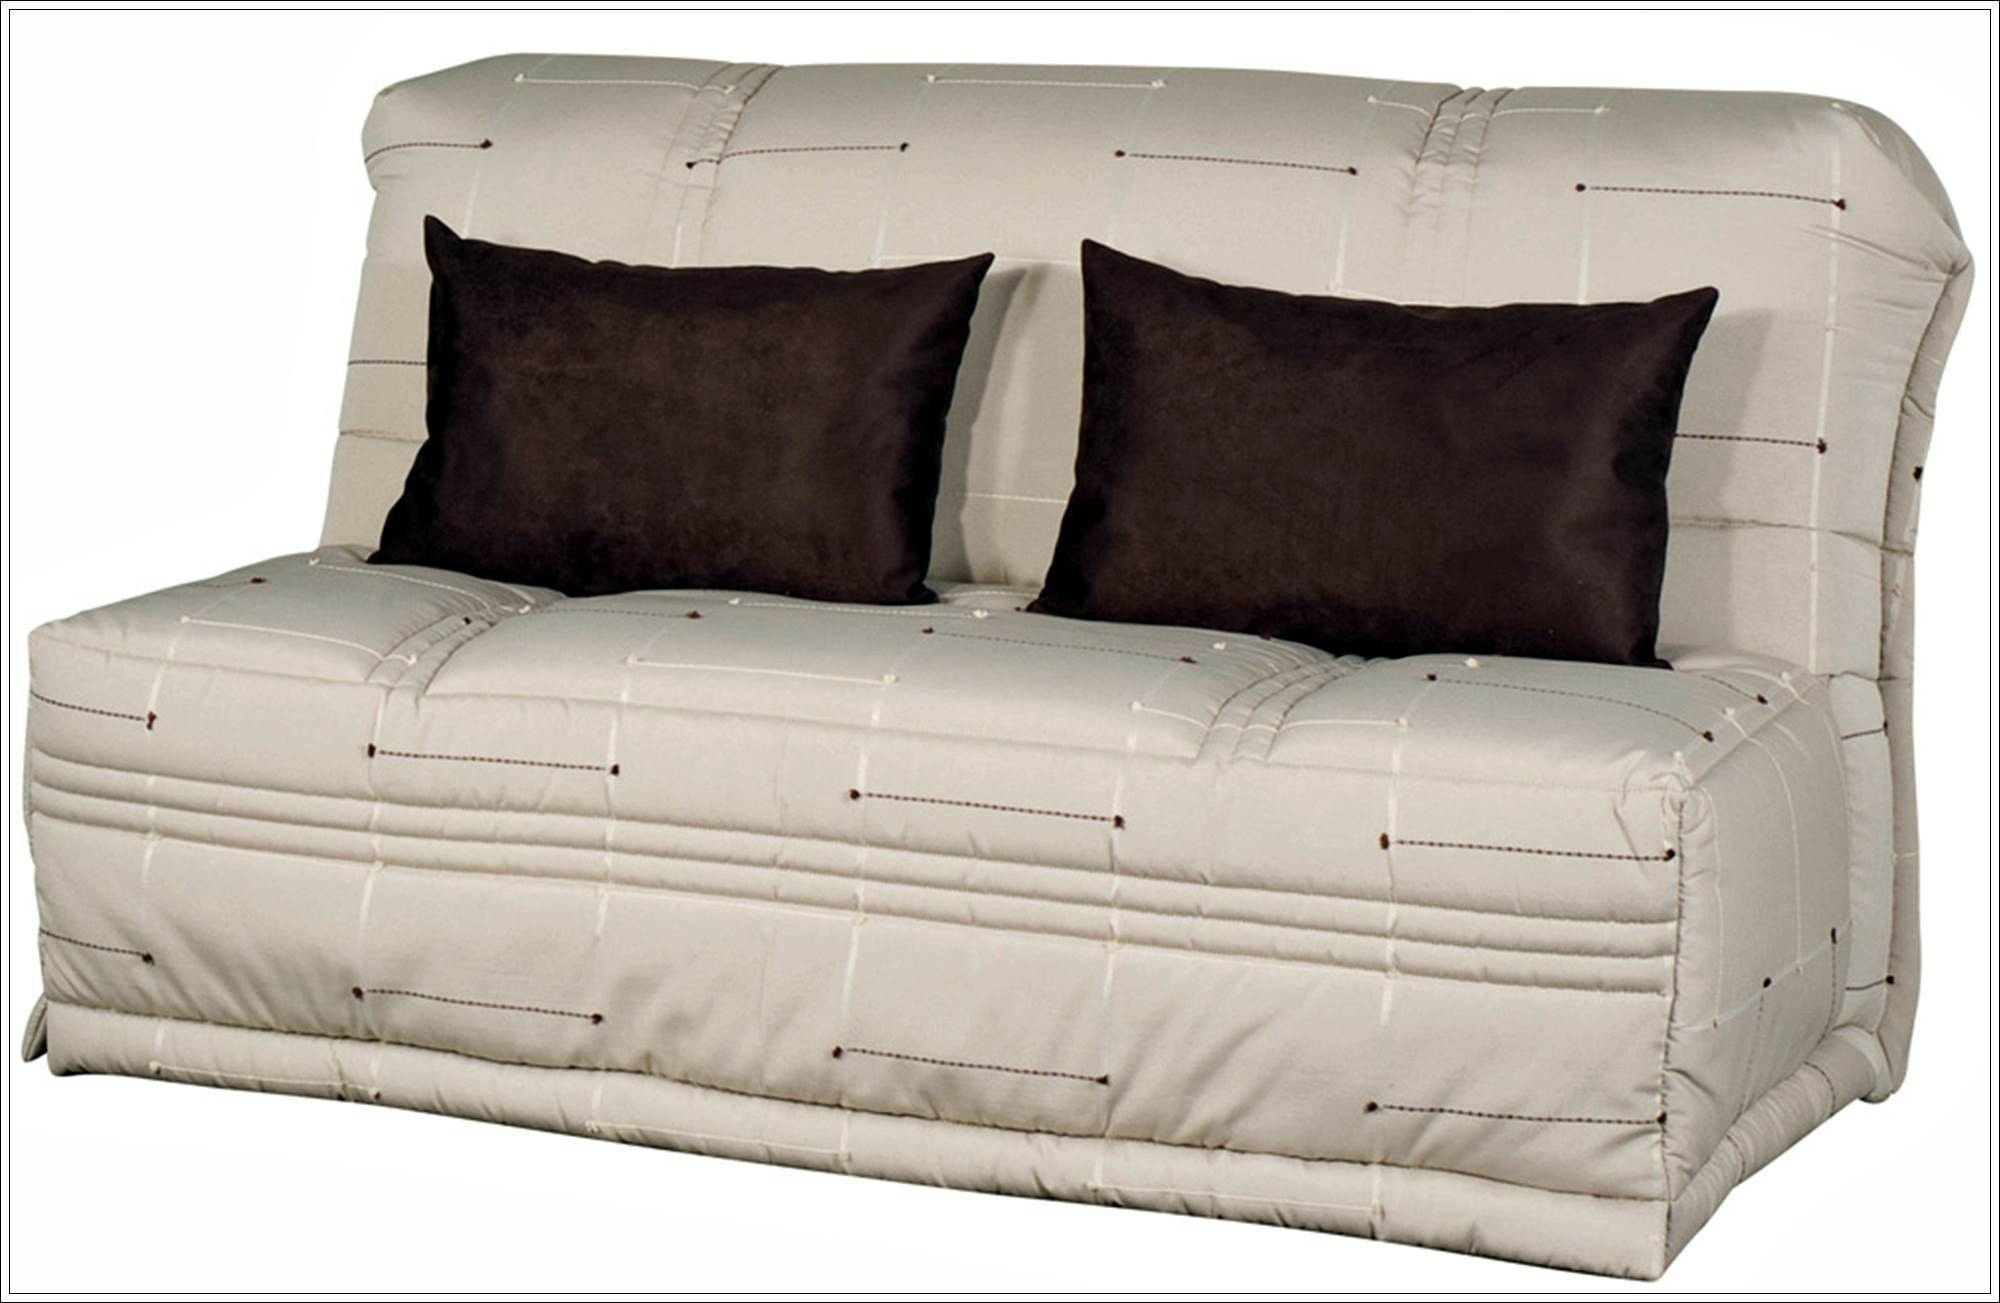 35 Inspirant Destockage Canape Idees In 2020 Love Seat Couch Bed